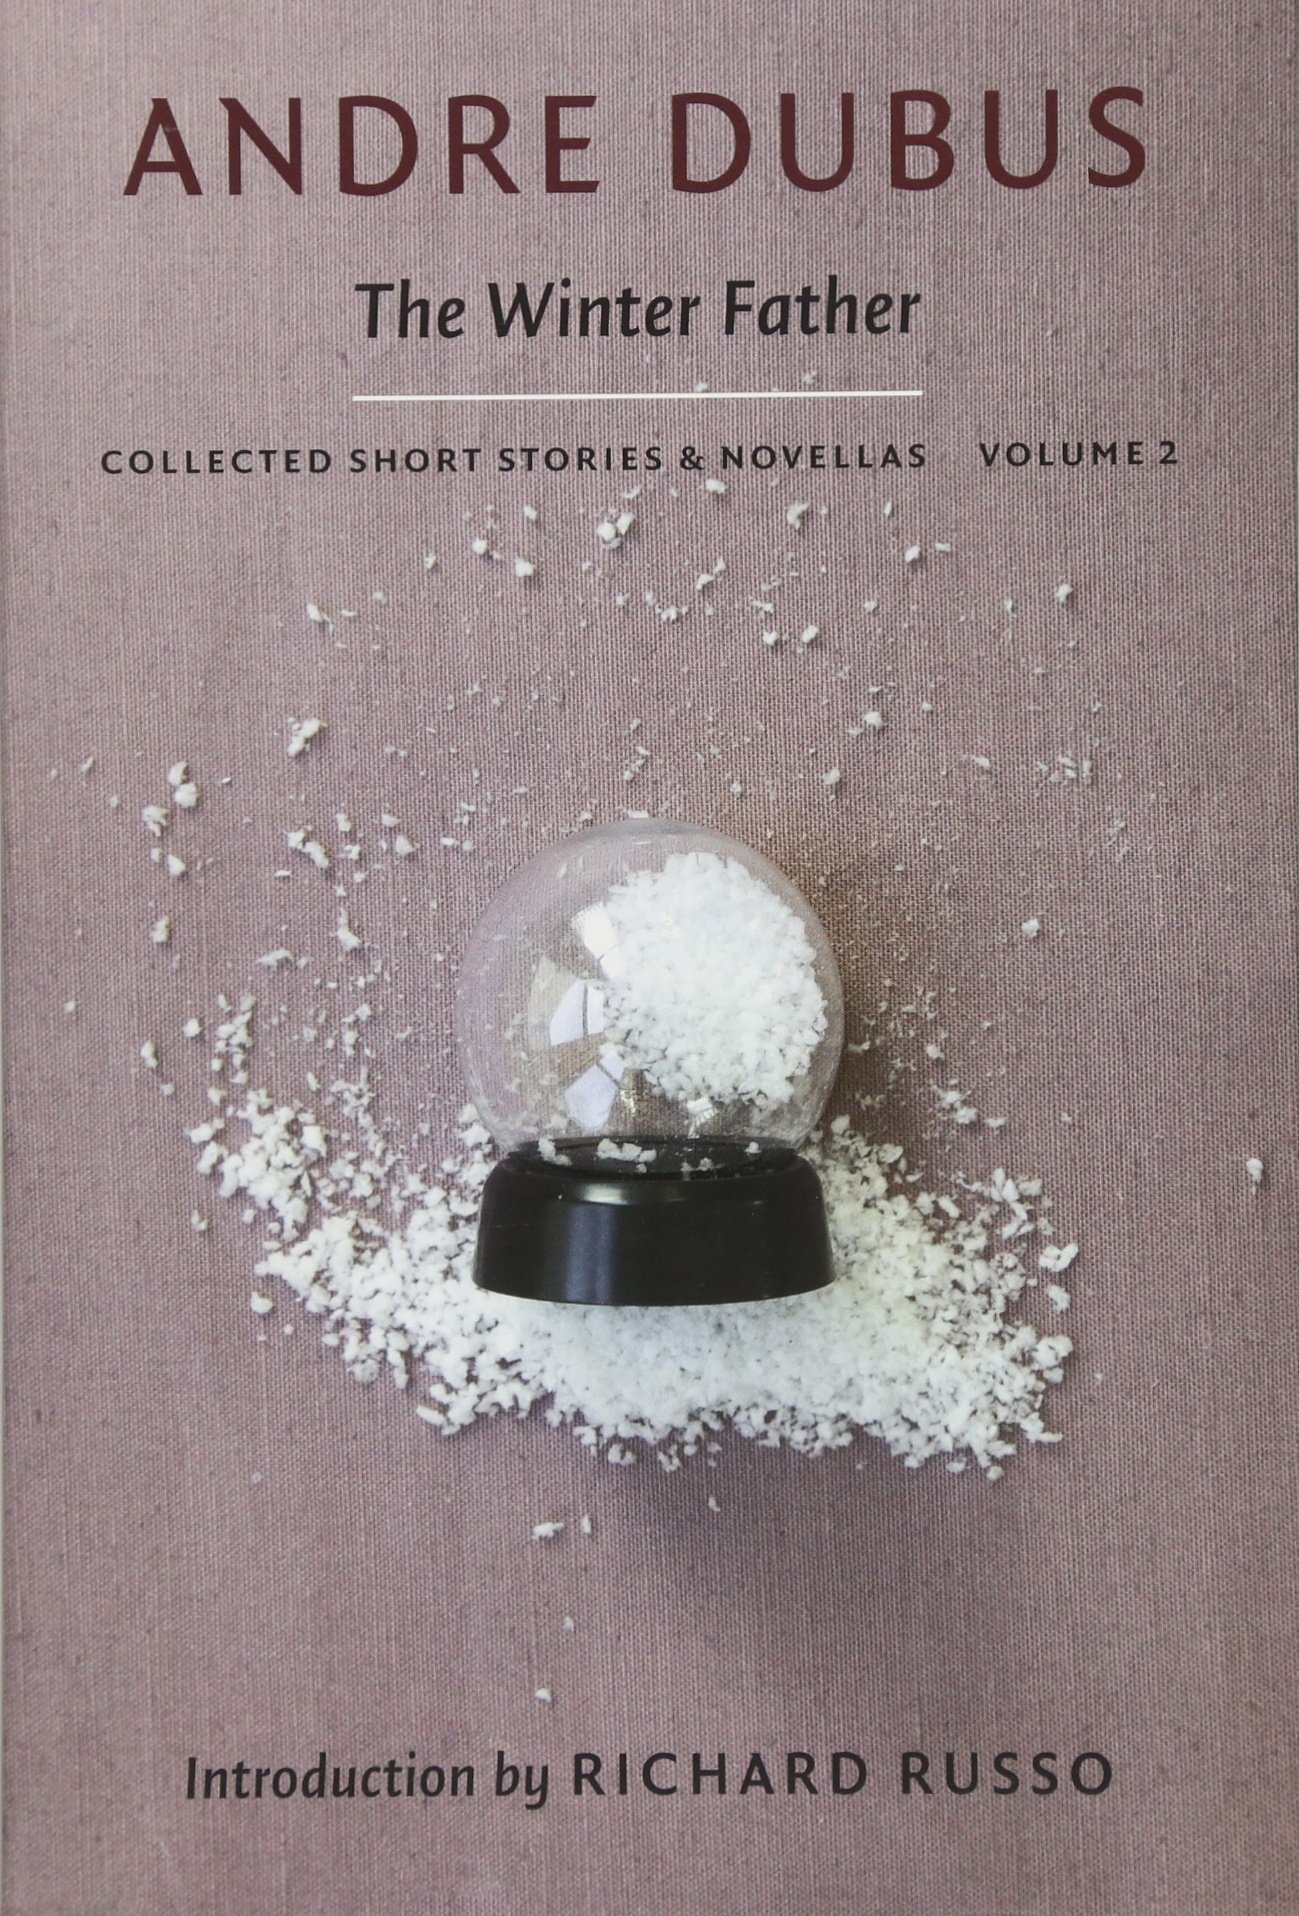 Download The Winter Father: Collected Short Stories and Novellas, Volume 2 (Collected Short Stories and Novellas of Andre Dubus) (Collected Short Stories & Novellas) ebook